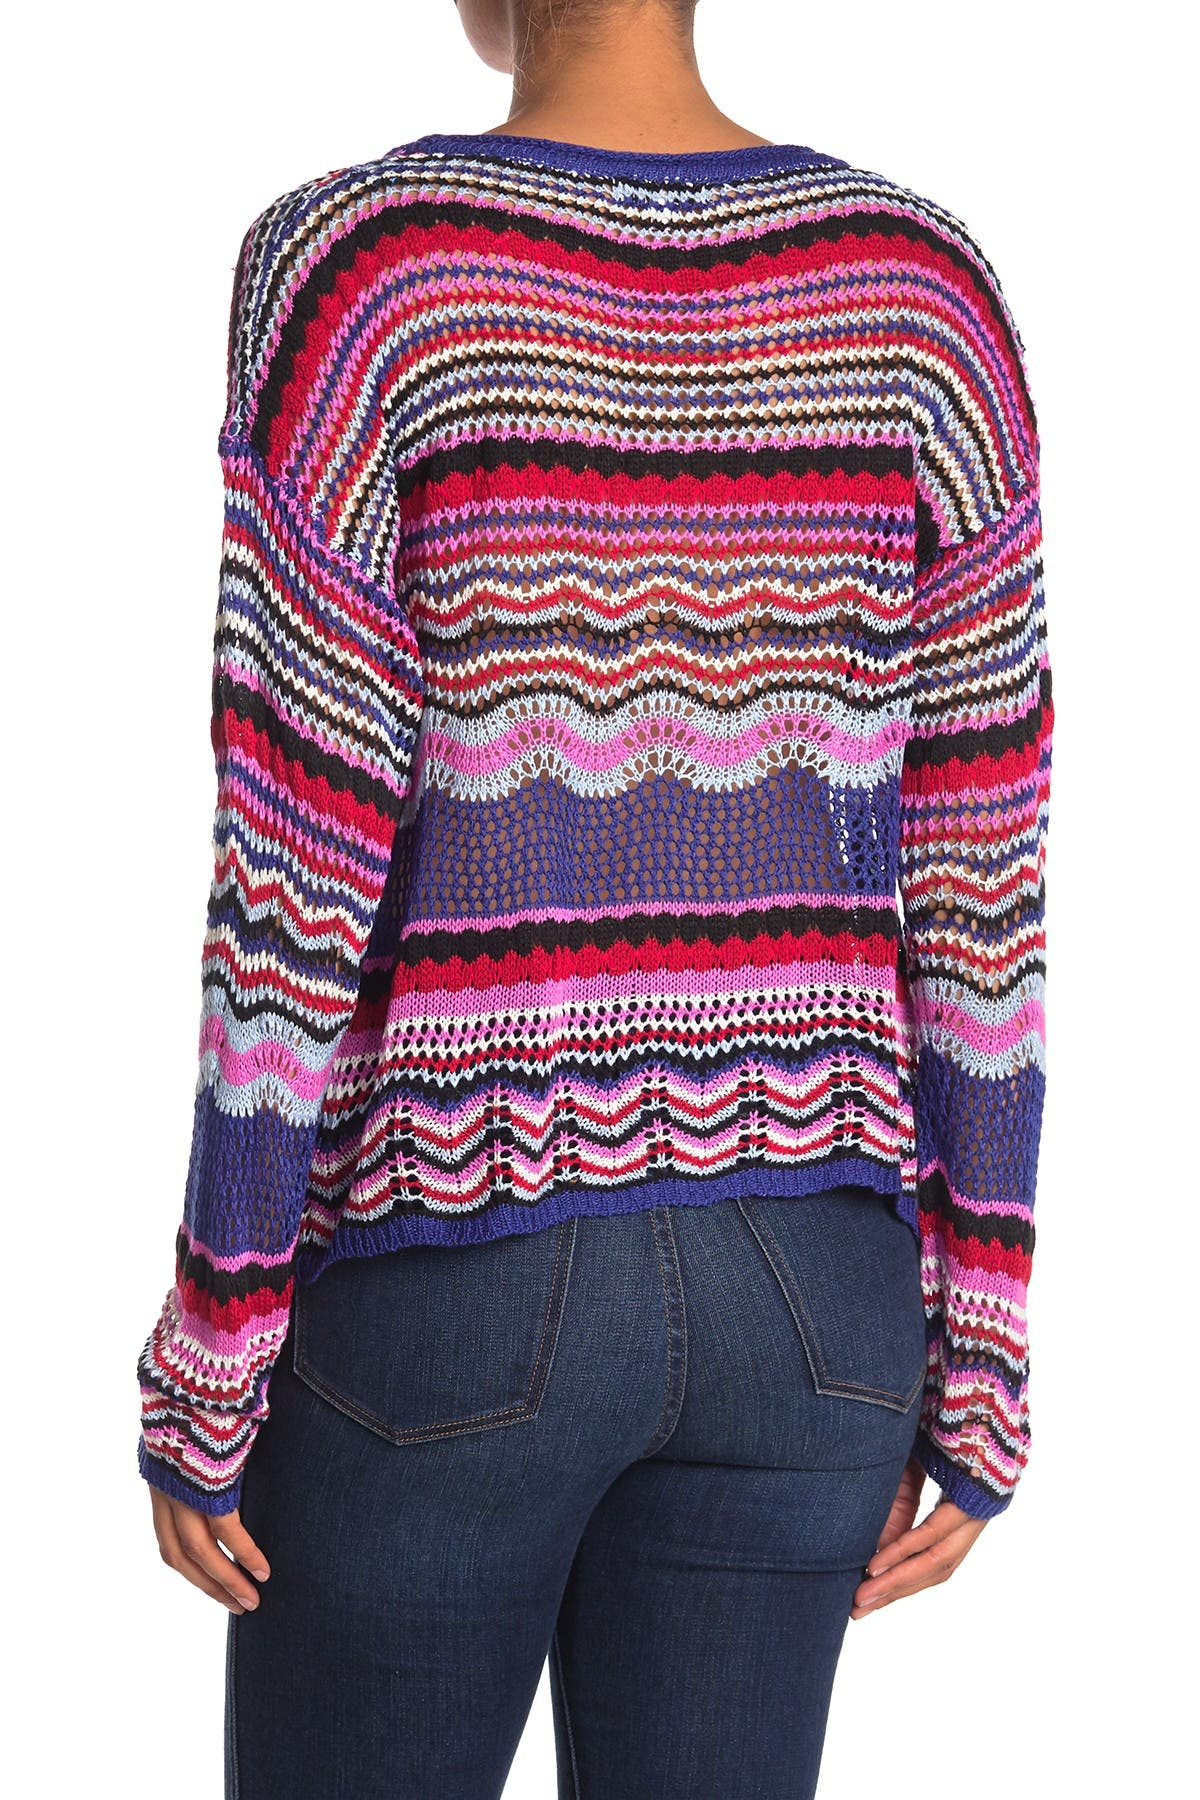 Image of Woven Heart Long Sleeve Multi Striped Sweater